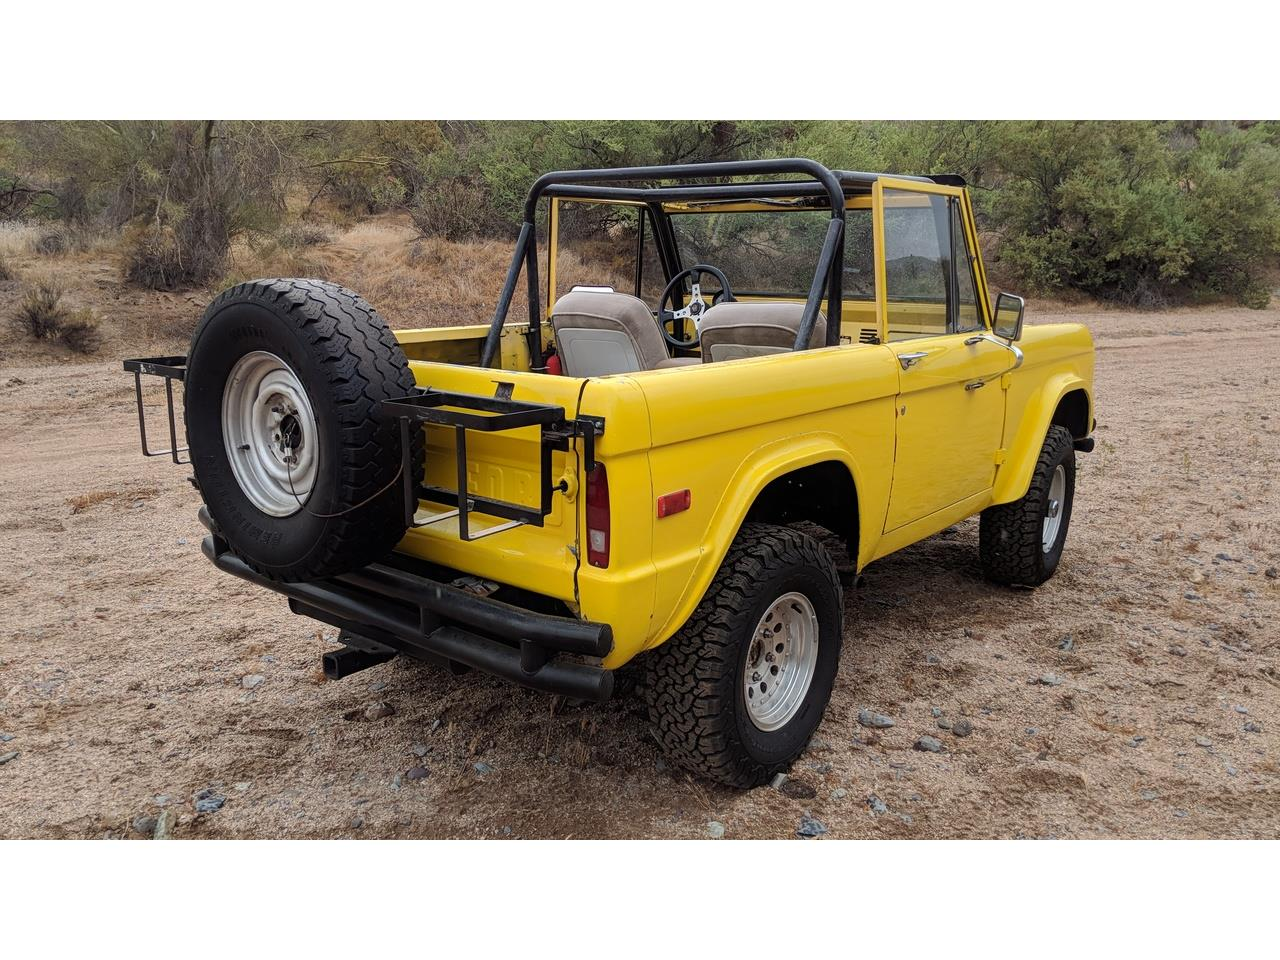 Large Picture of Classic '71 Ford Bronco located in Arizona - $22,500.00 Offered by a Private Seller - NQFY